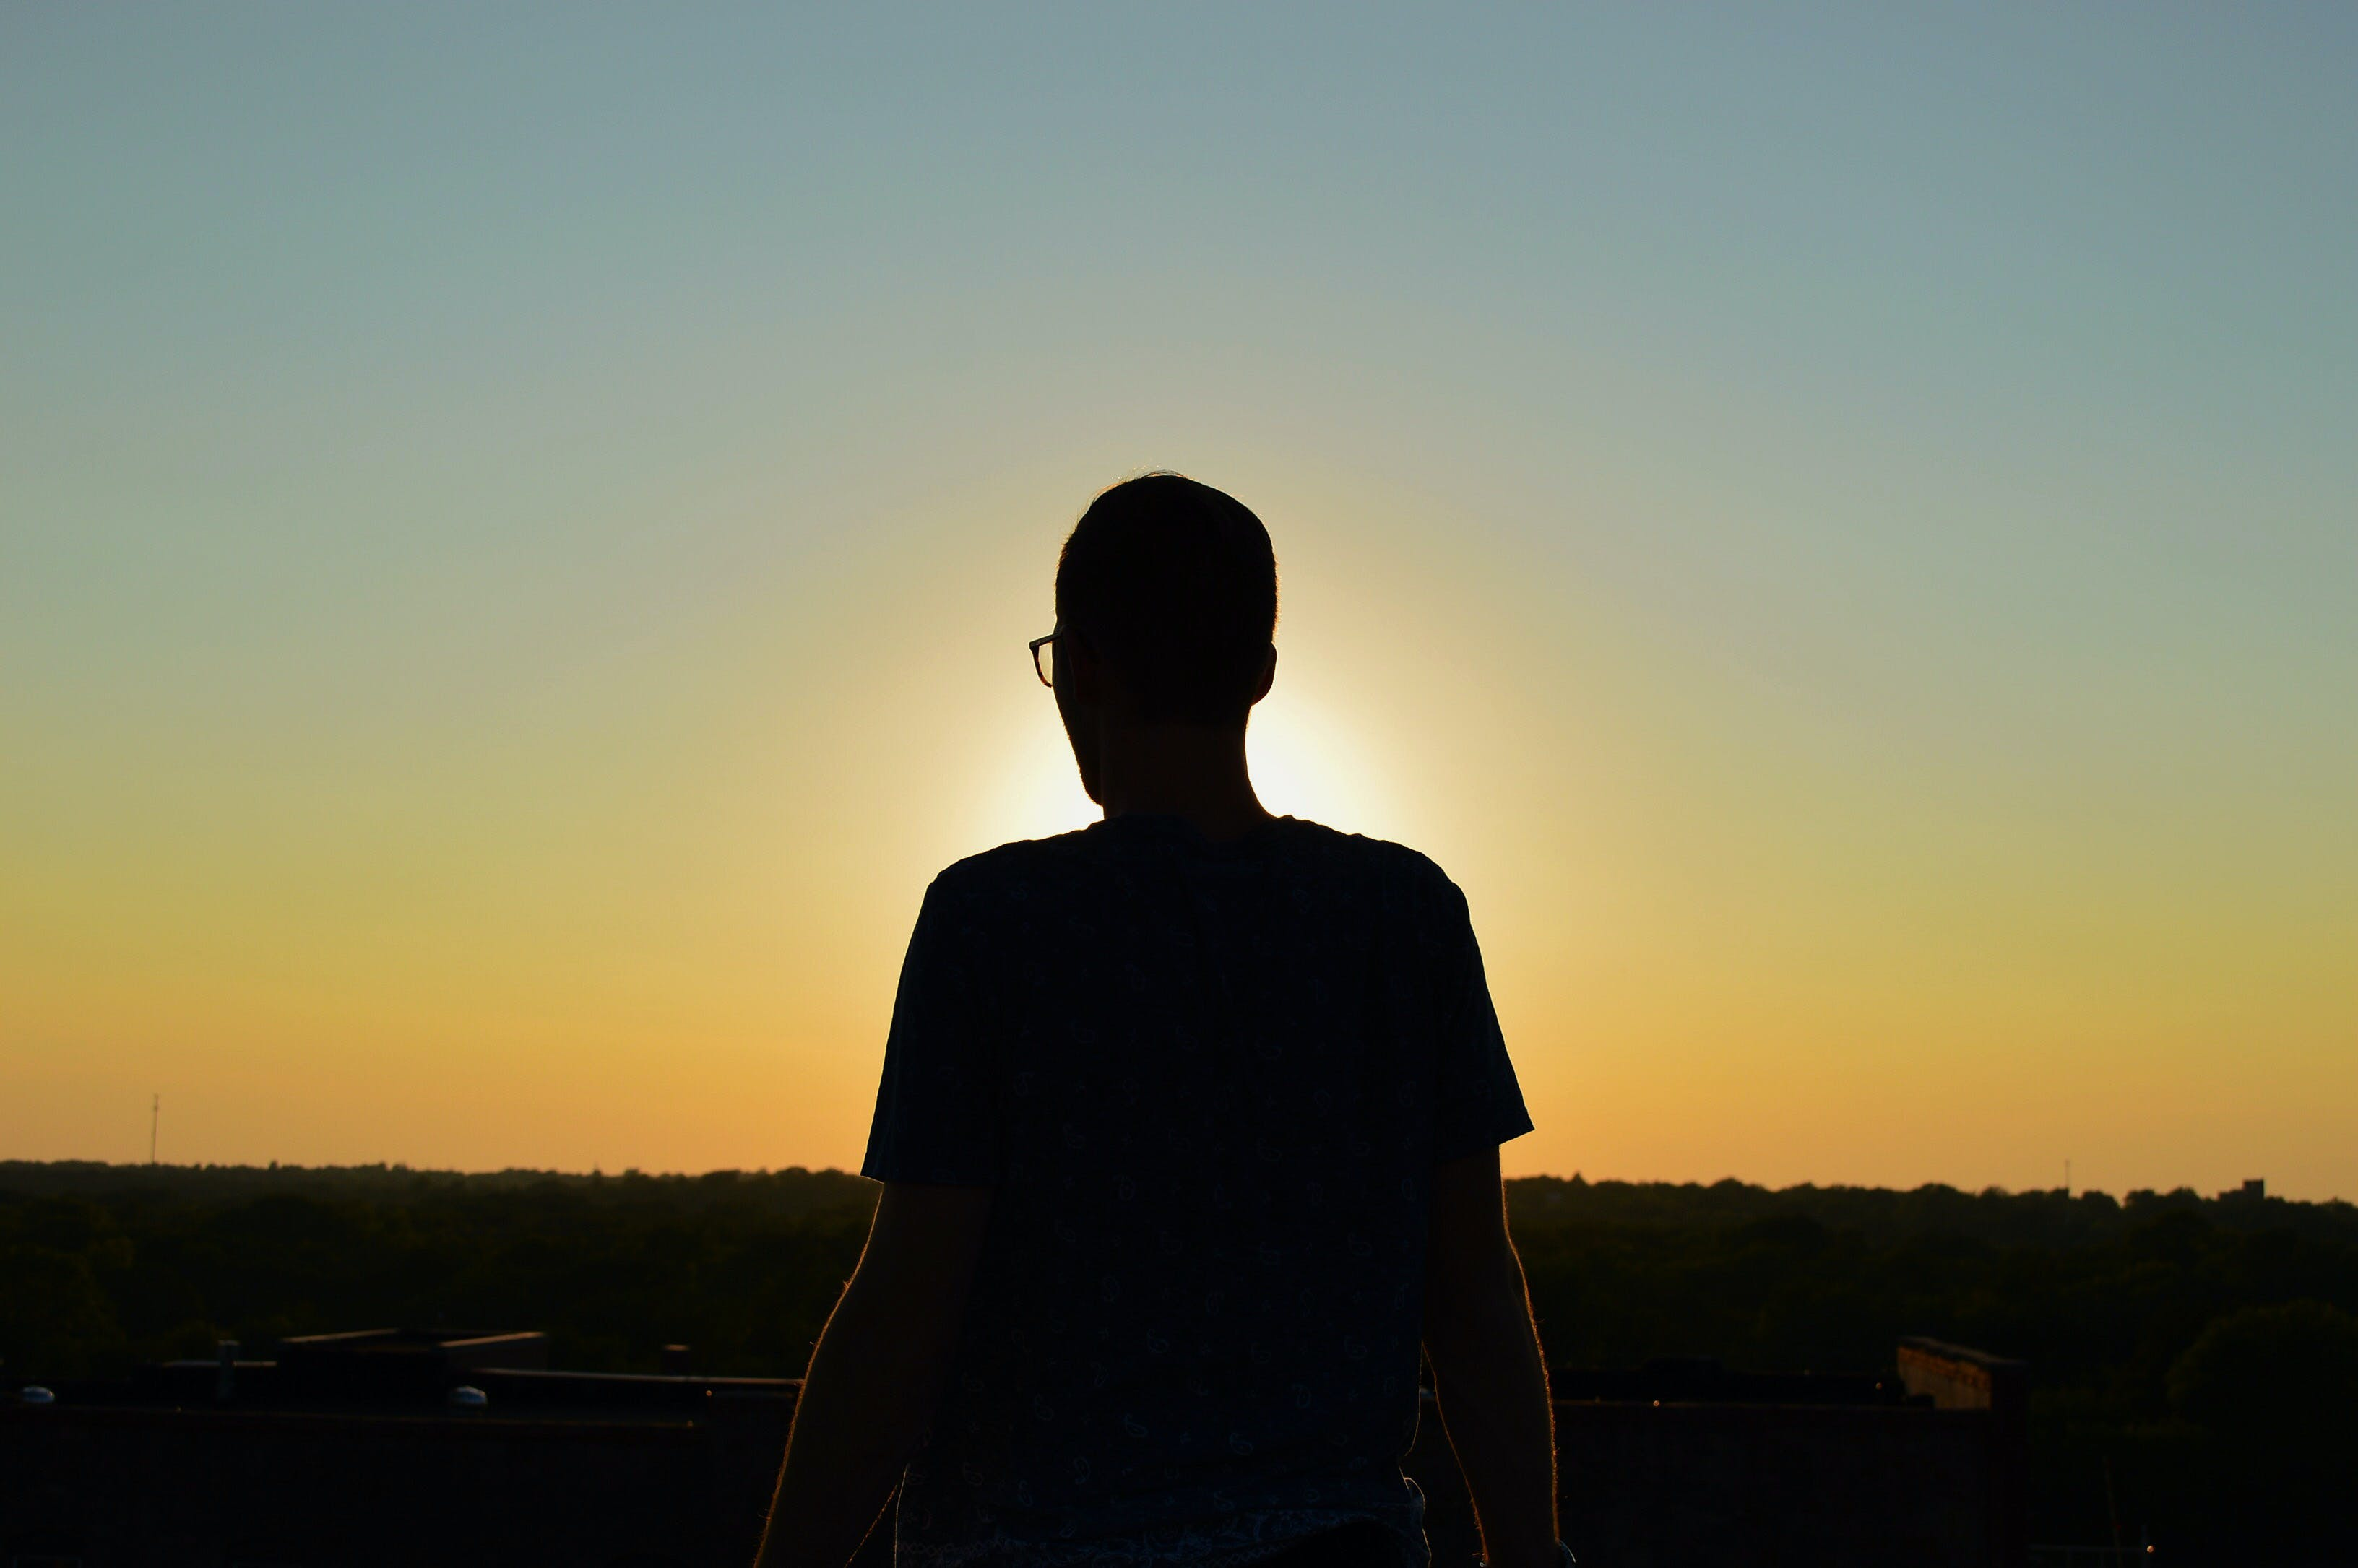 person, silhouette, sunrise